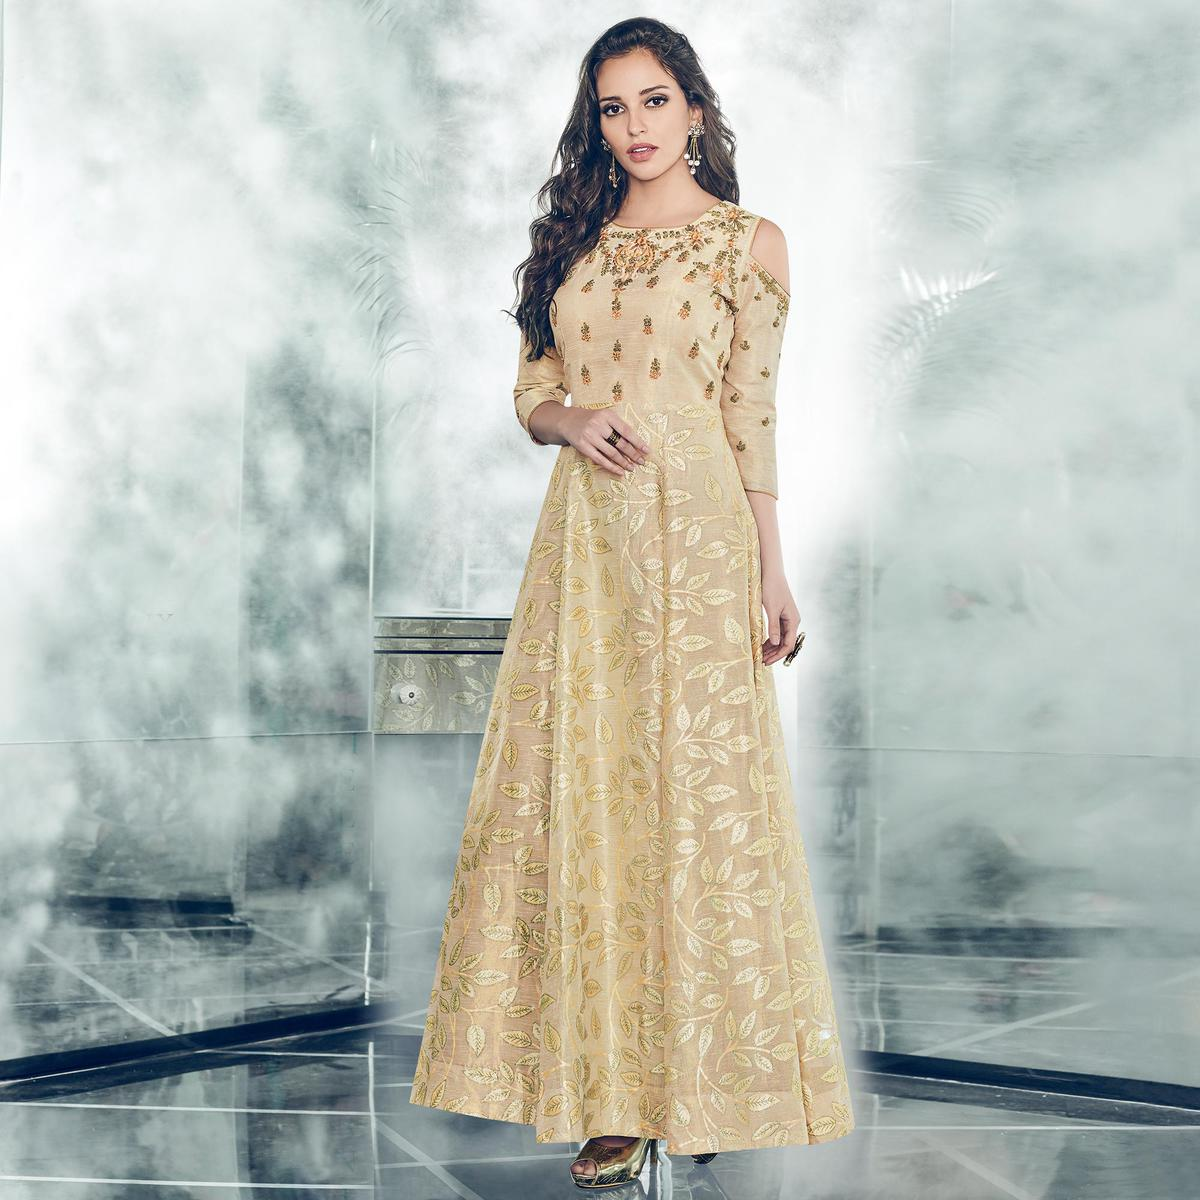 Fantastic Cream Colored Partywear Embroidered Tapetta-Satin Gown